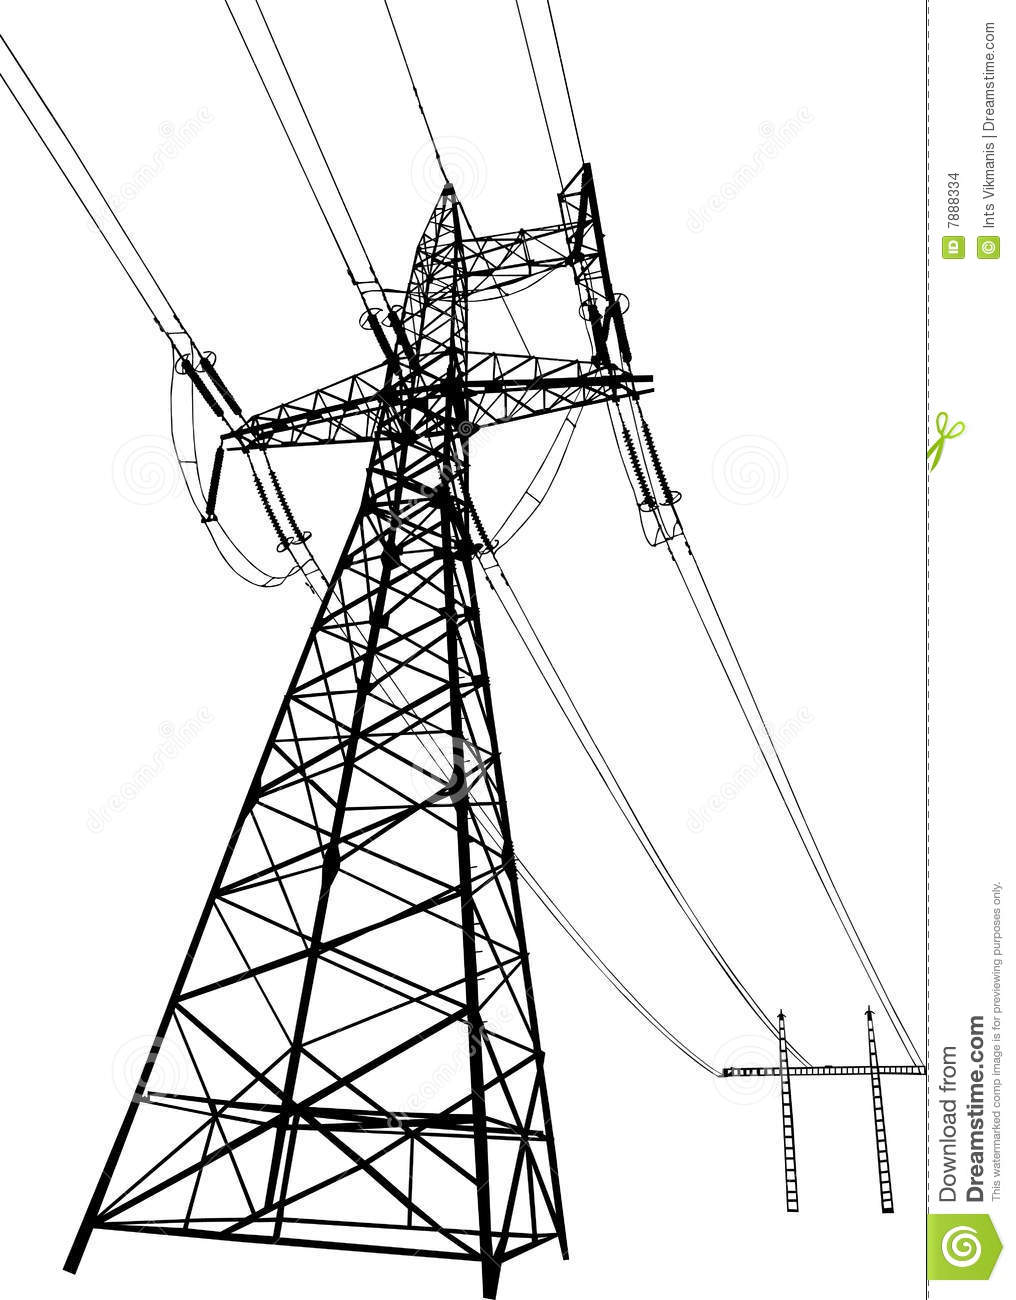 power lines and electric pylons stock vector